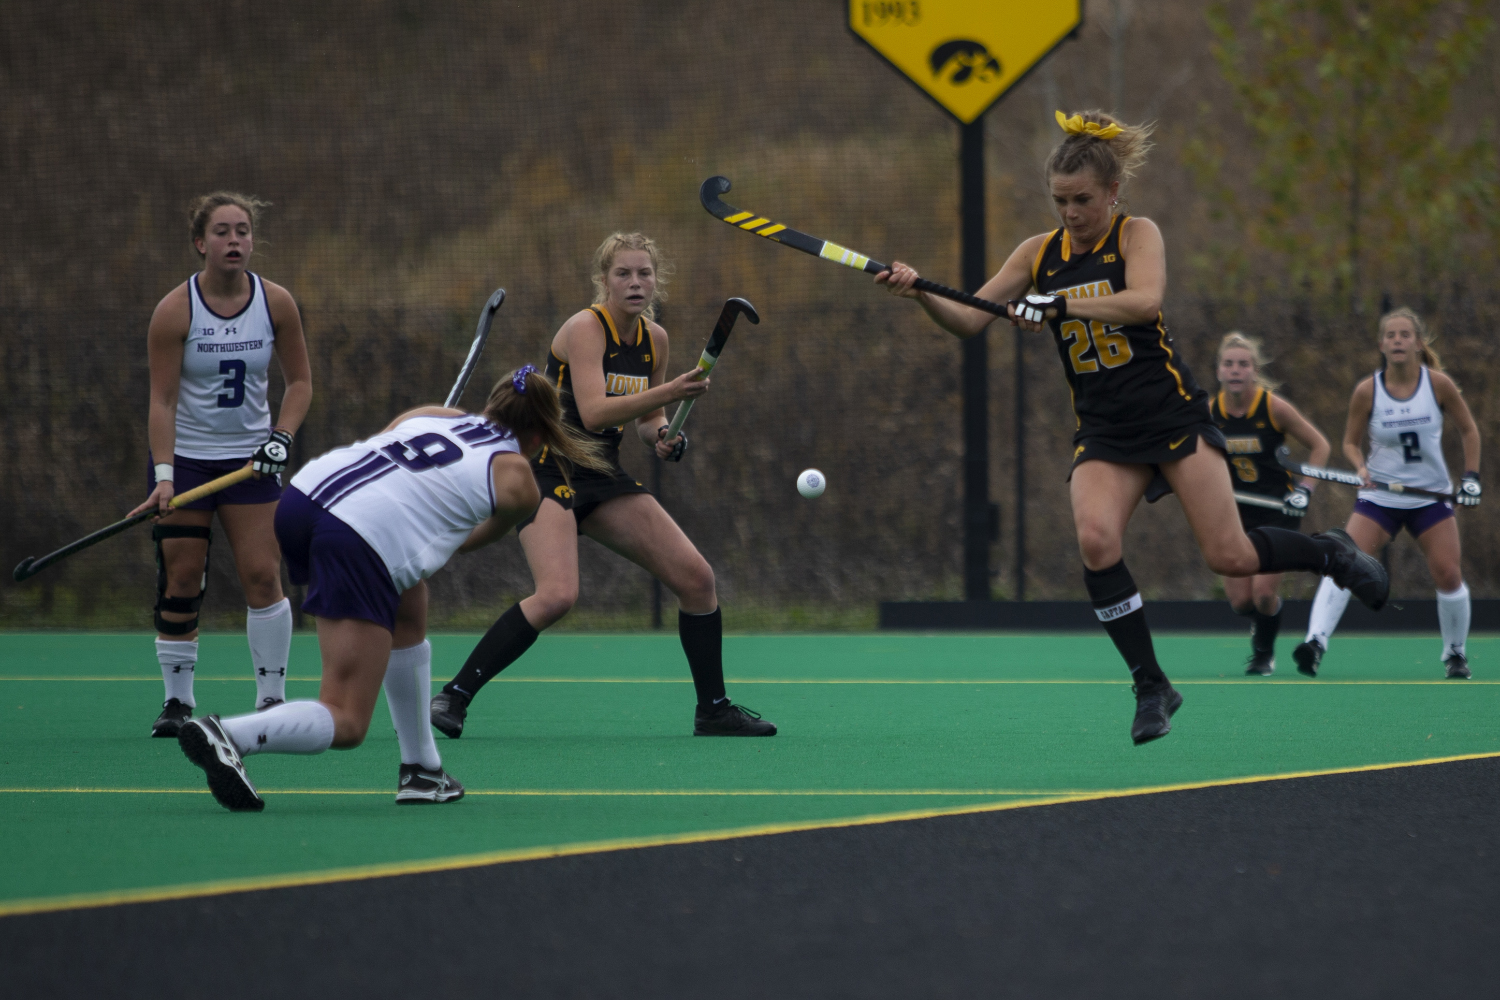 Iowa forward Maddy Murphy jumps to block a pass during a field hockey game between Iowa and Northwestern at Grant Field on Saturday Oct. 26, 2019. The Hawkeyes defeated the Wildcats 2-1.